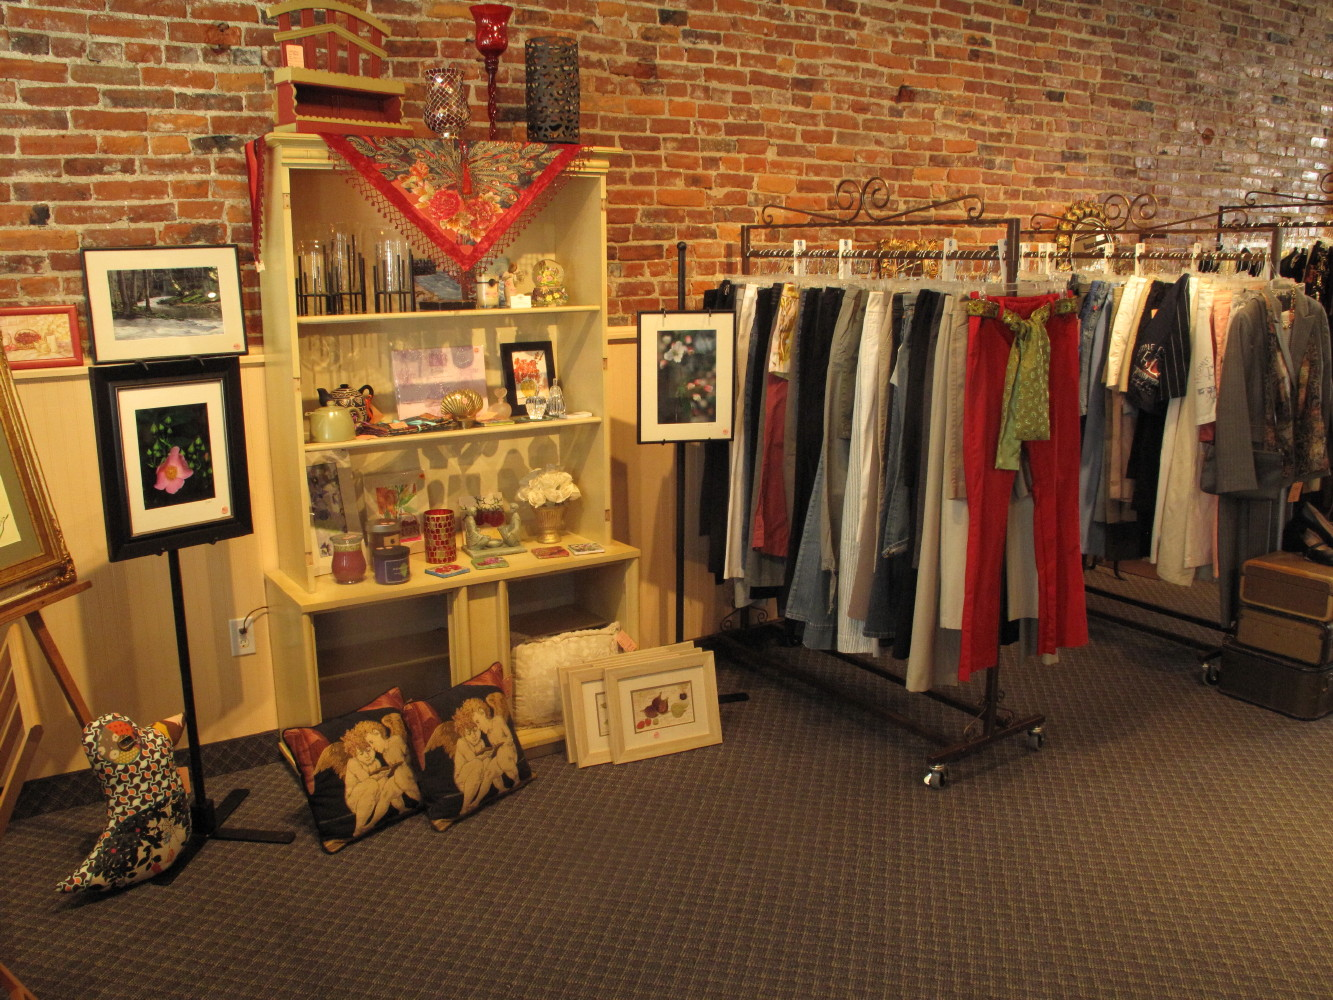 Come see our ever-expanding collection selection of gifts and local artwork.